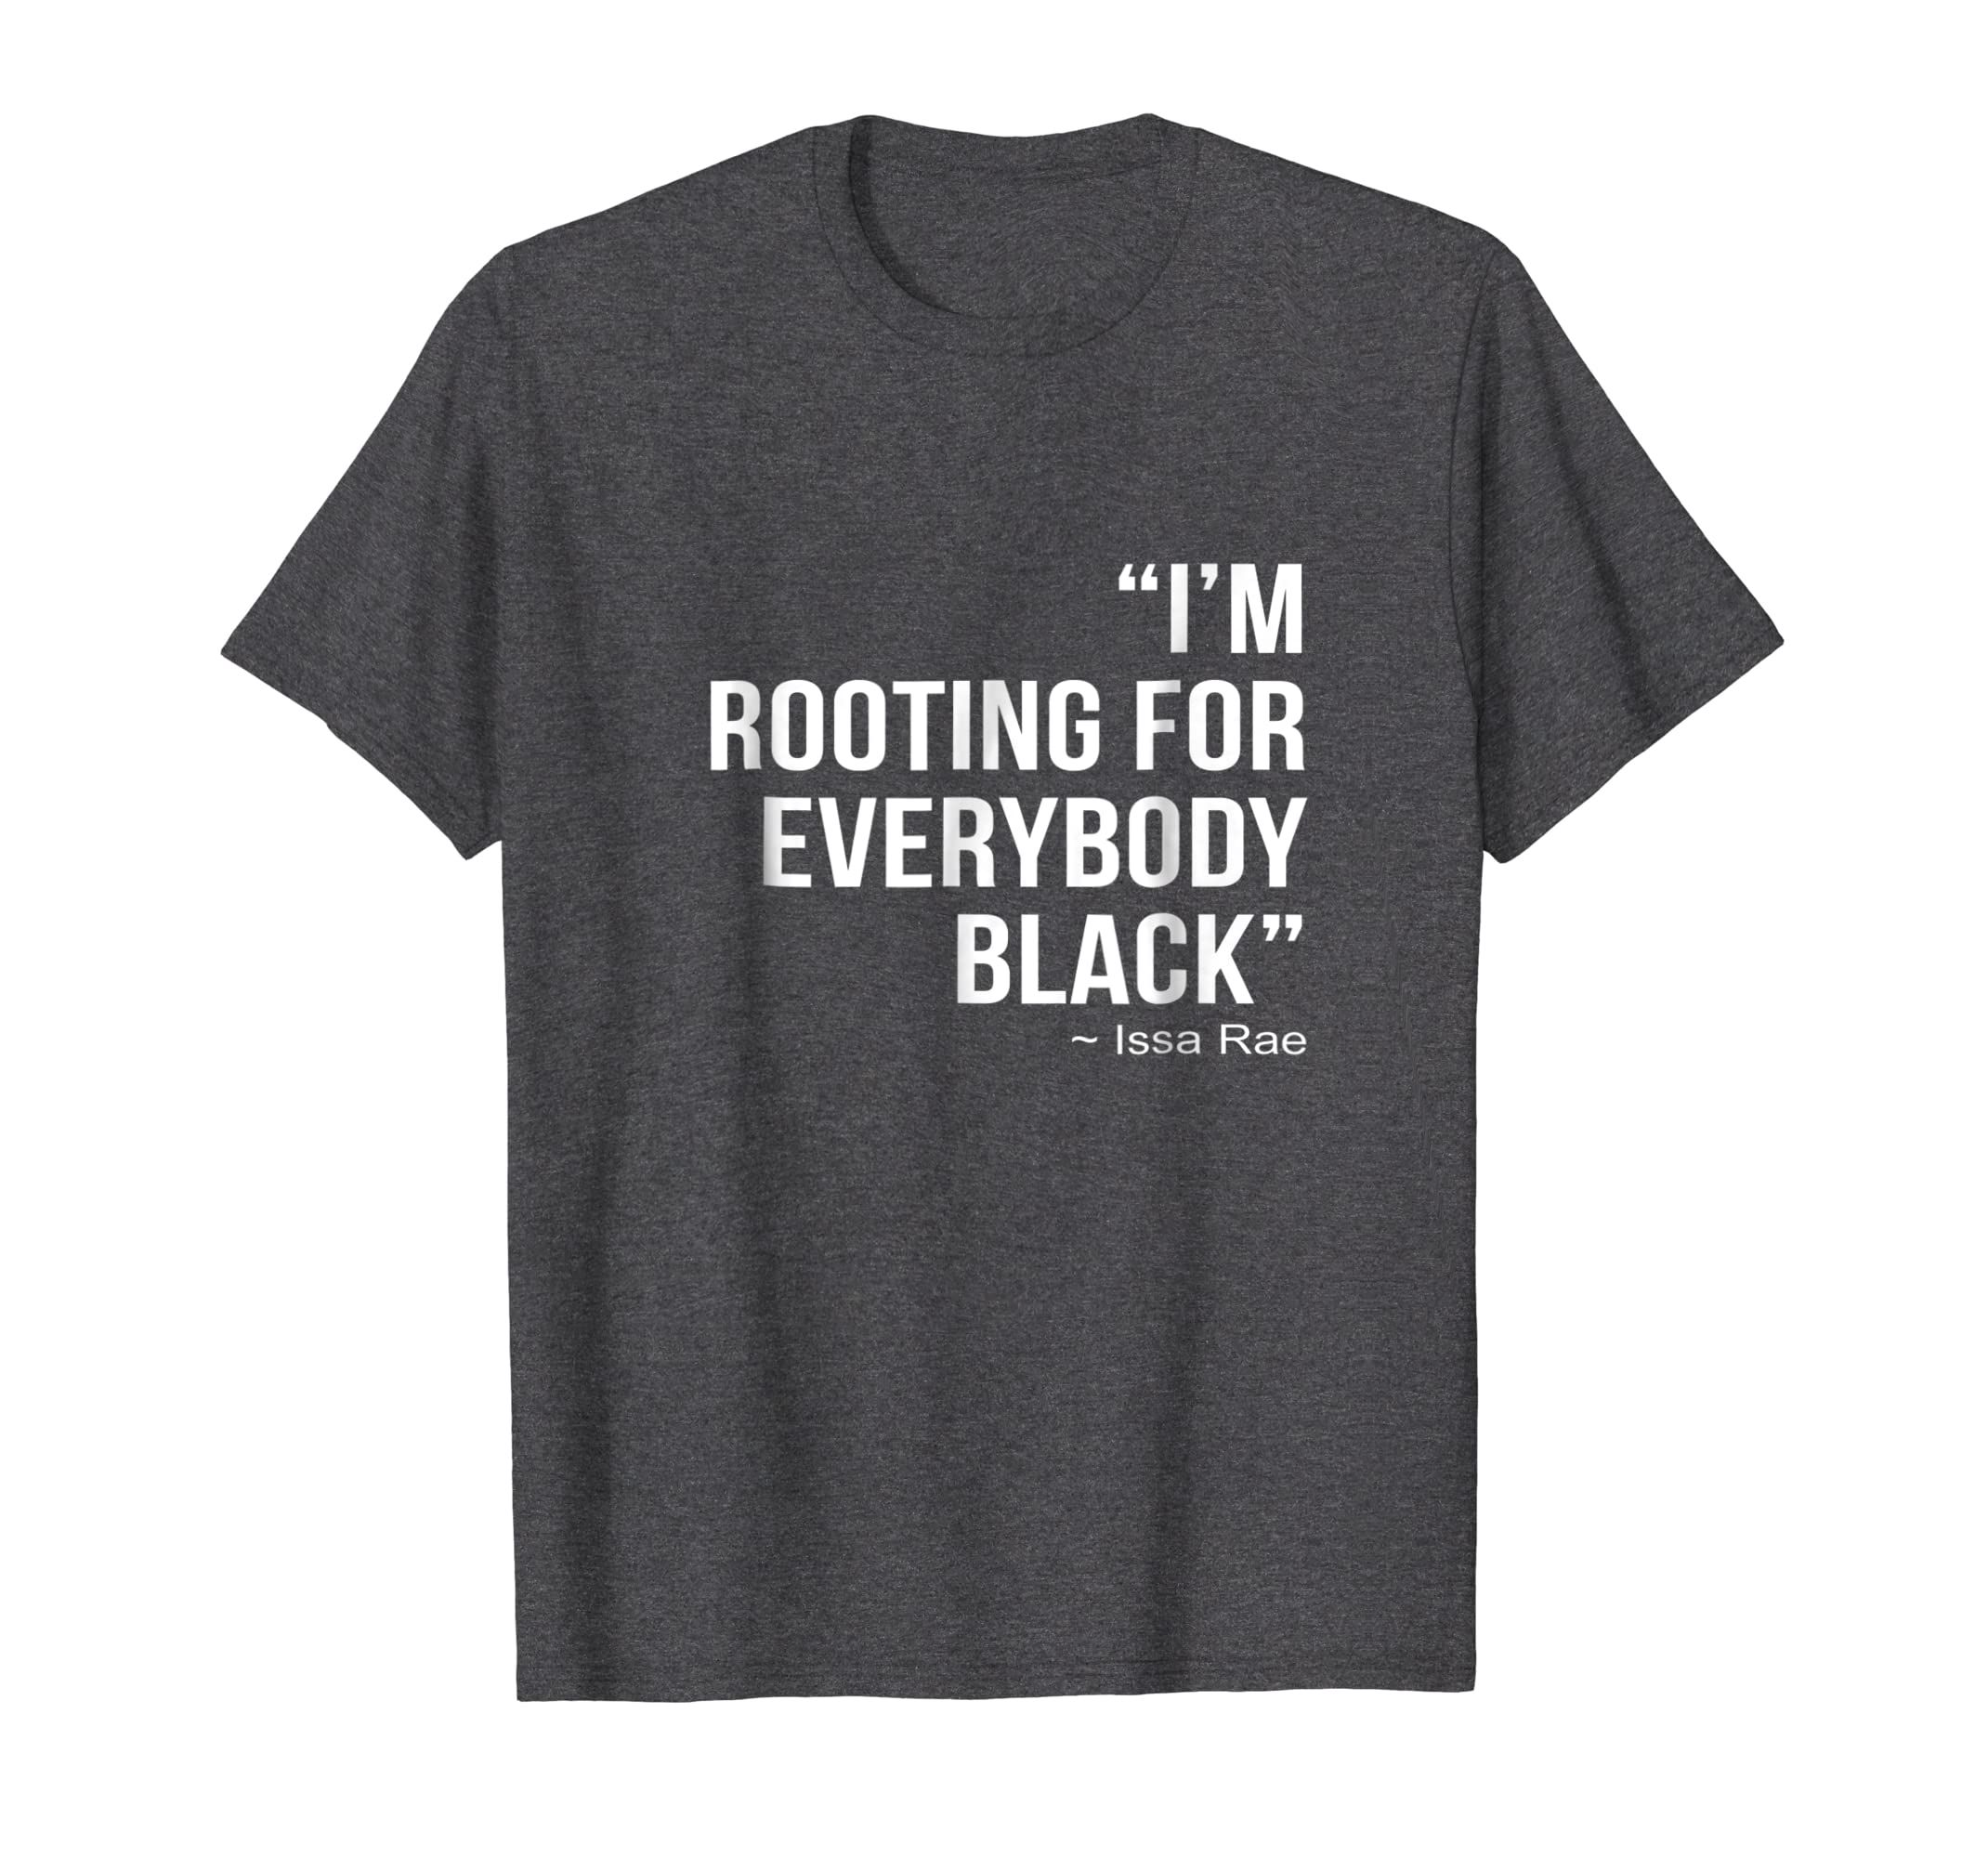 I'm Rooting For Everybody Black TShirt Blm Power Tee